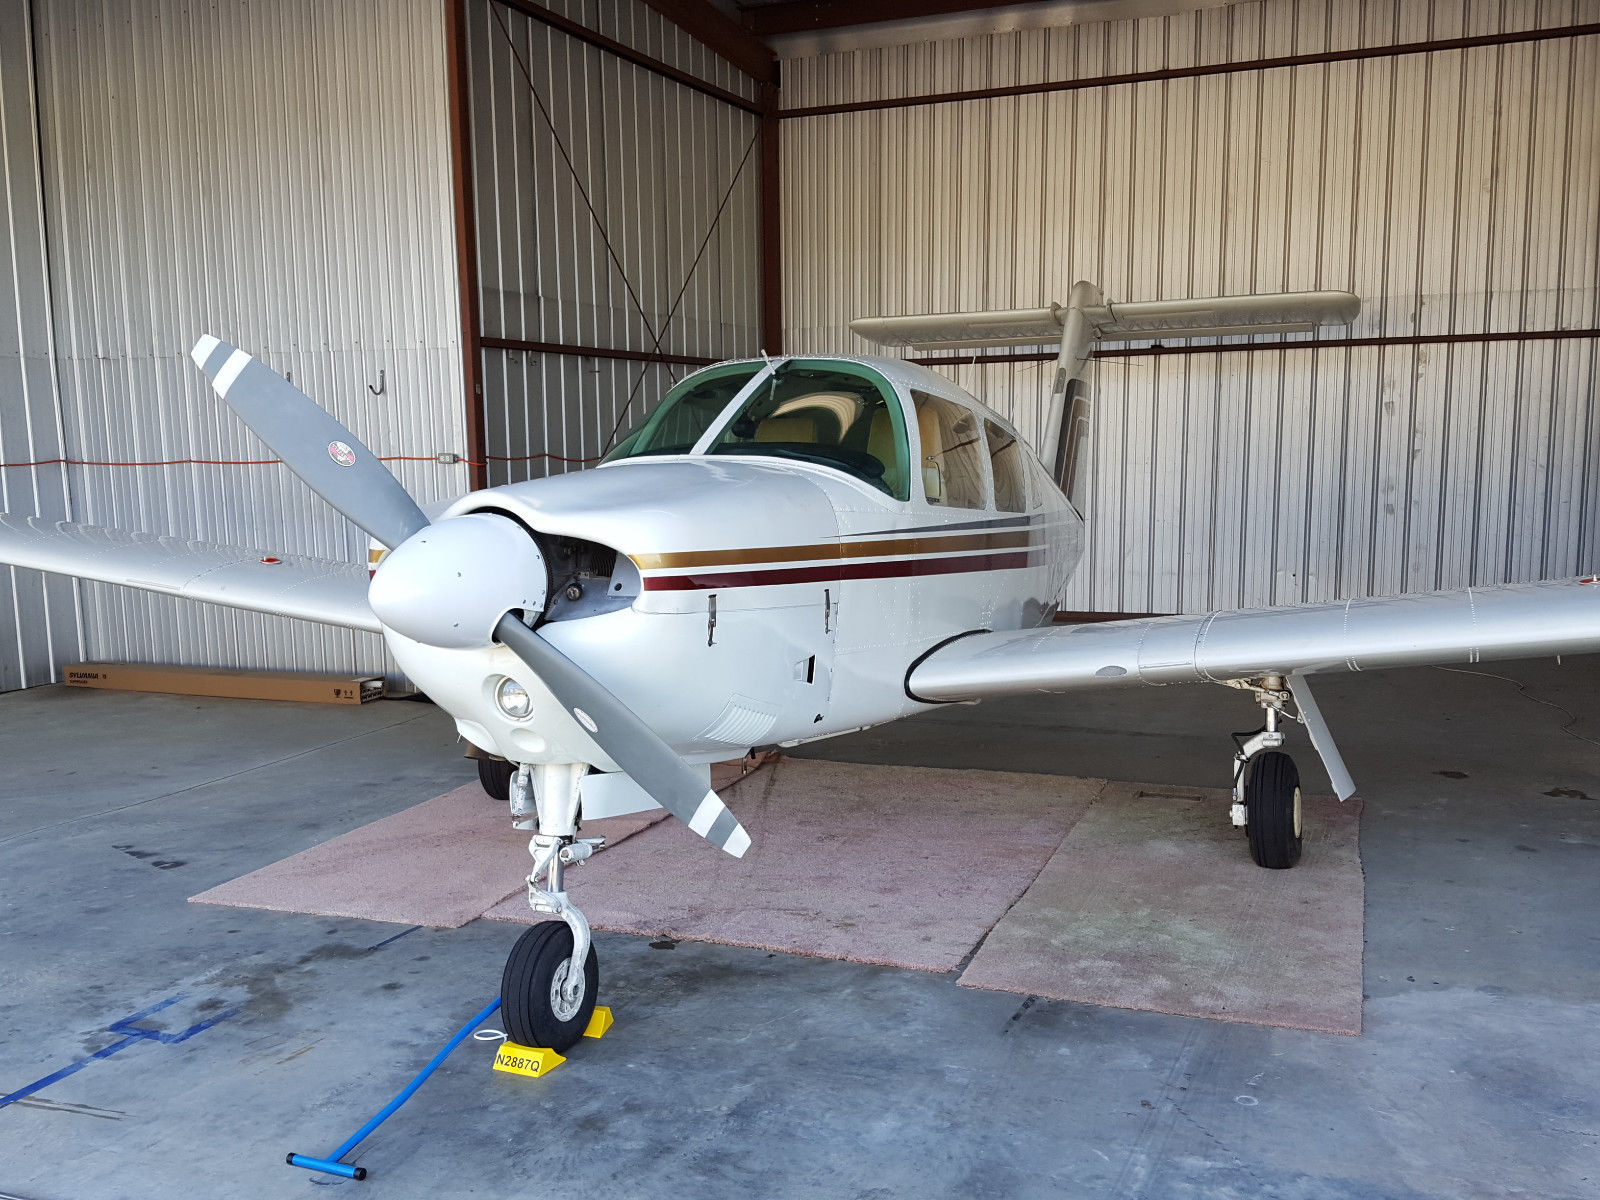 Fresh Prop Overhaul 1979 Piper Arrow IV Aircraft for sale